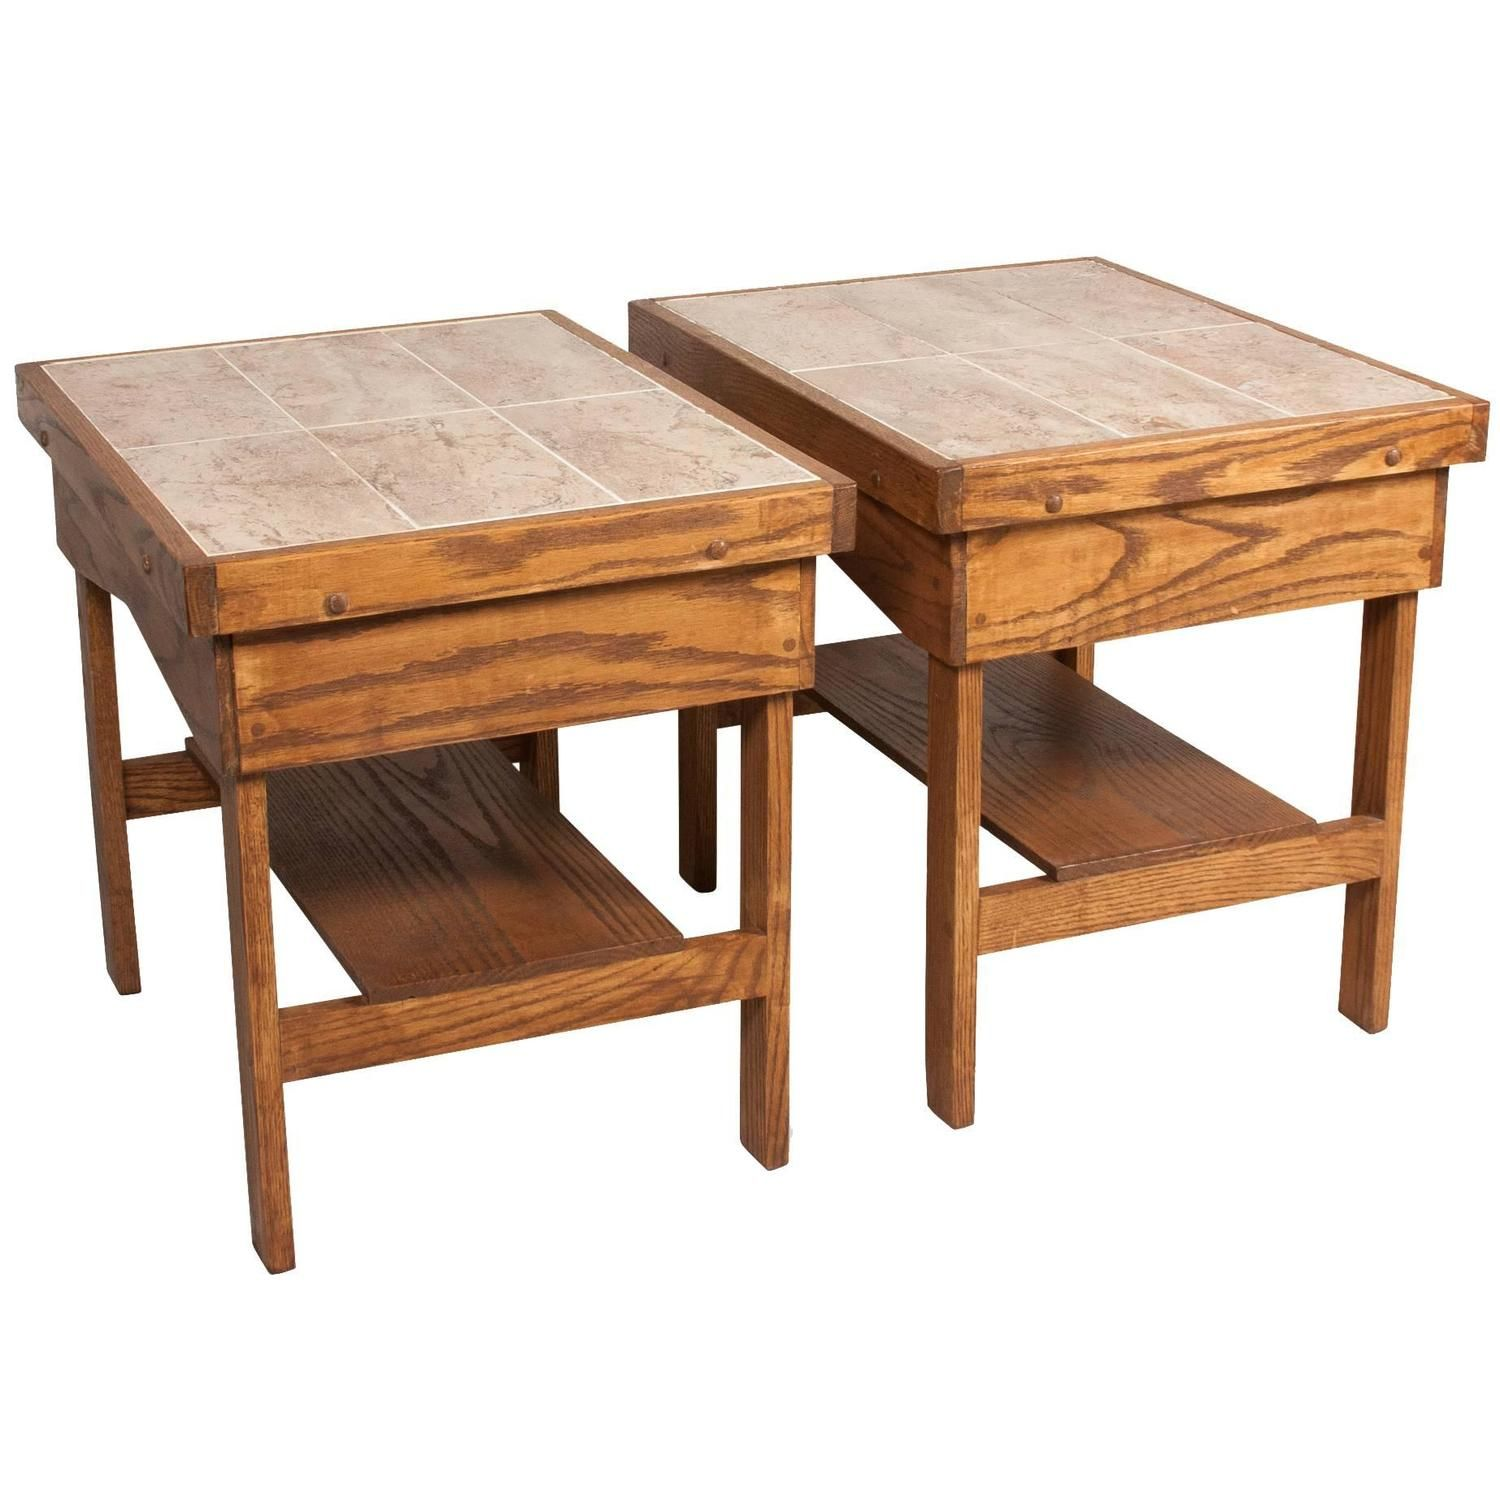 Pair of Ceramic Tile Top End Tables